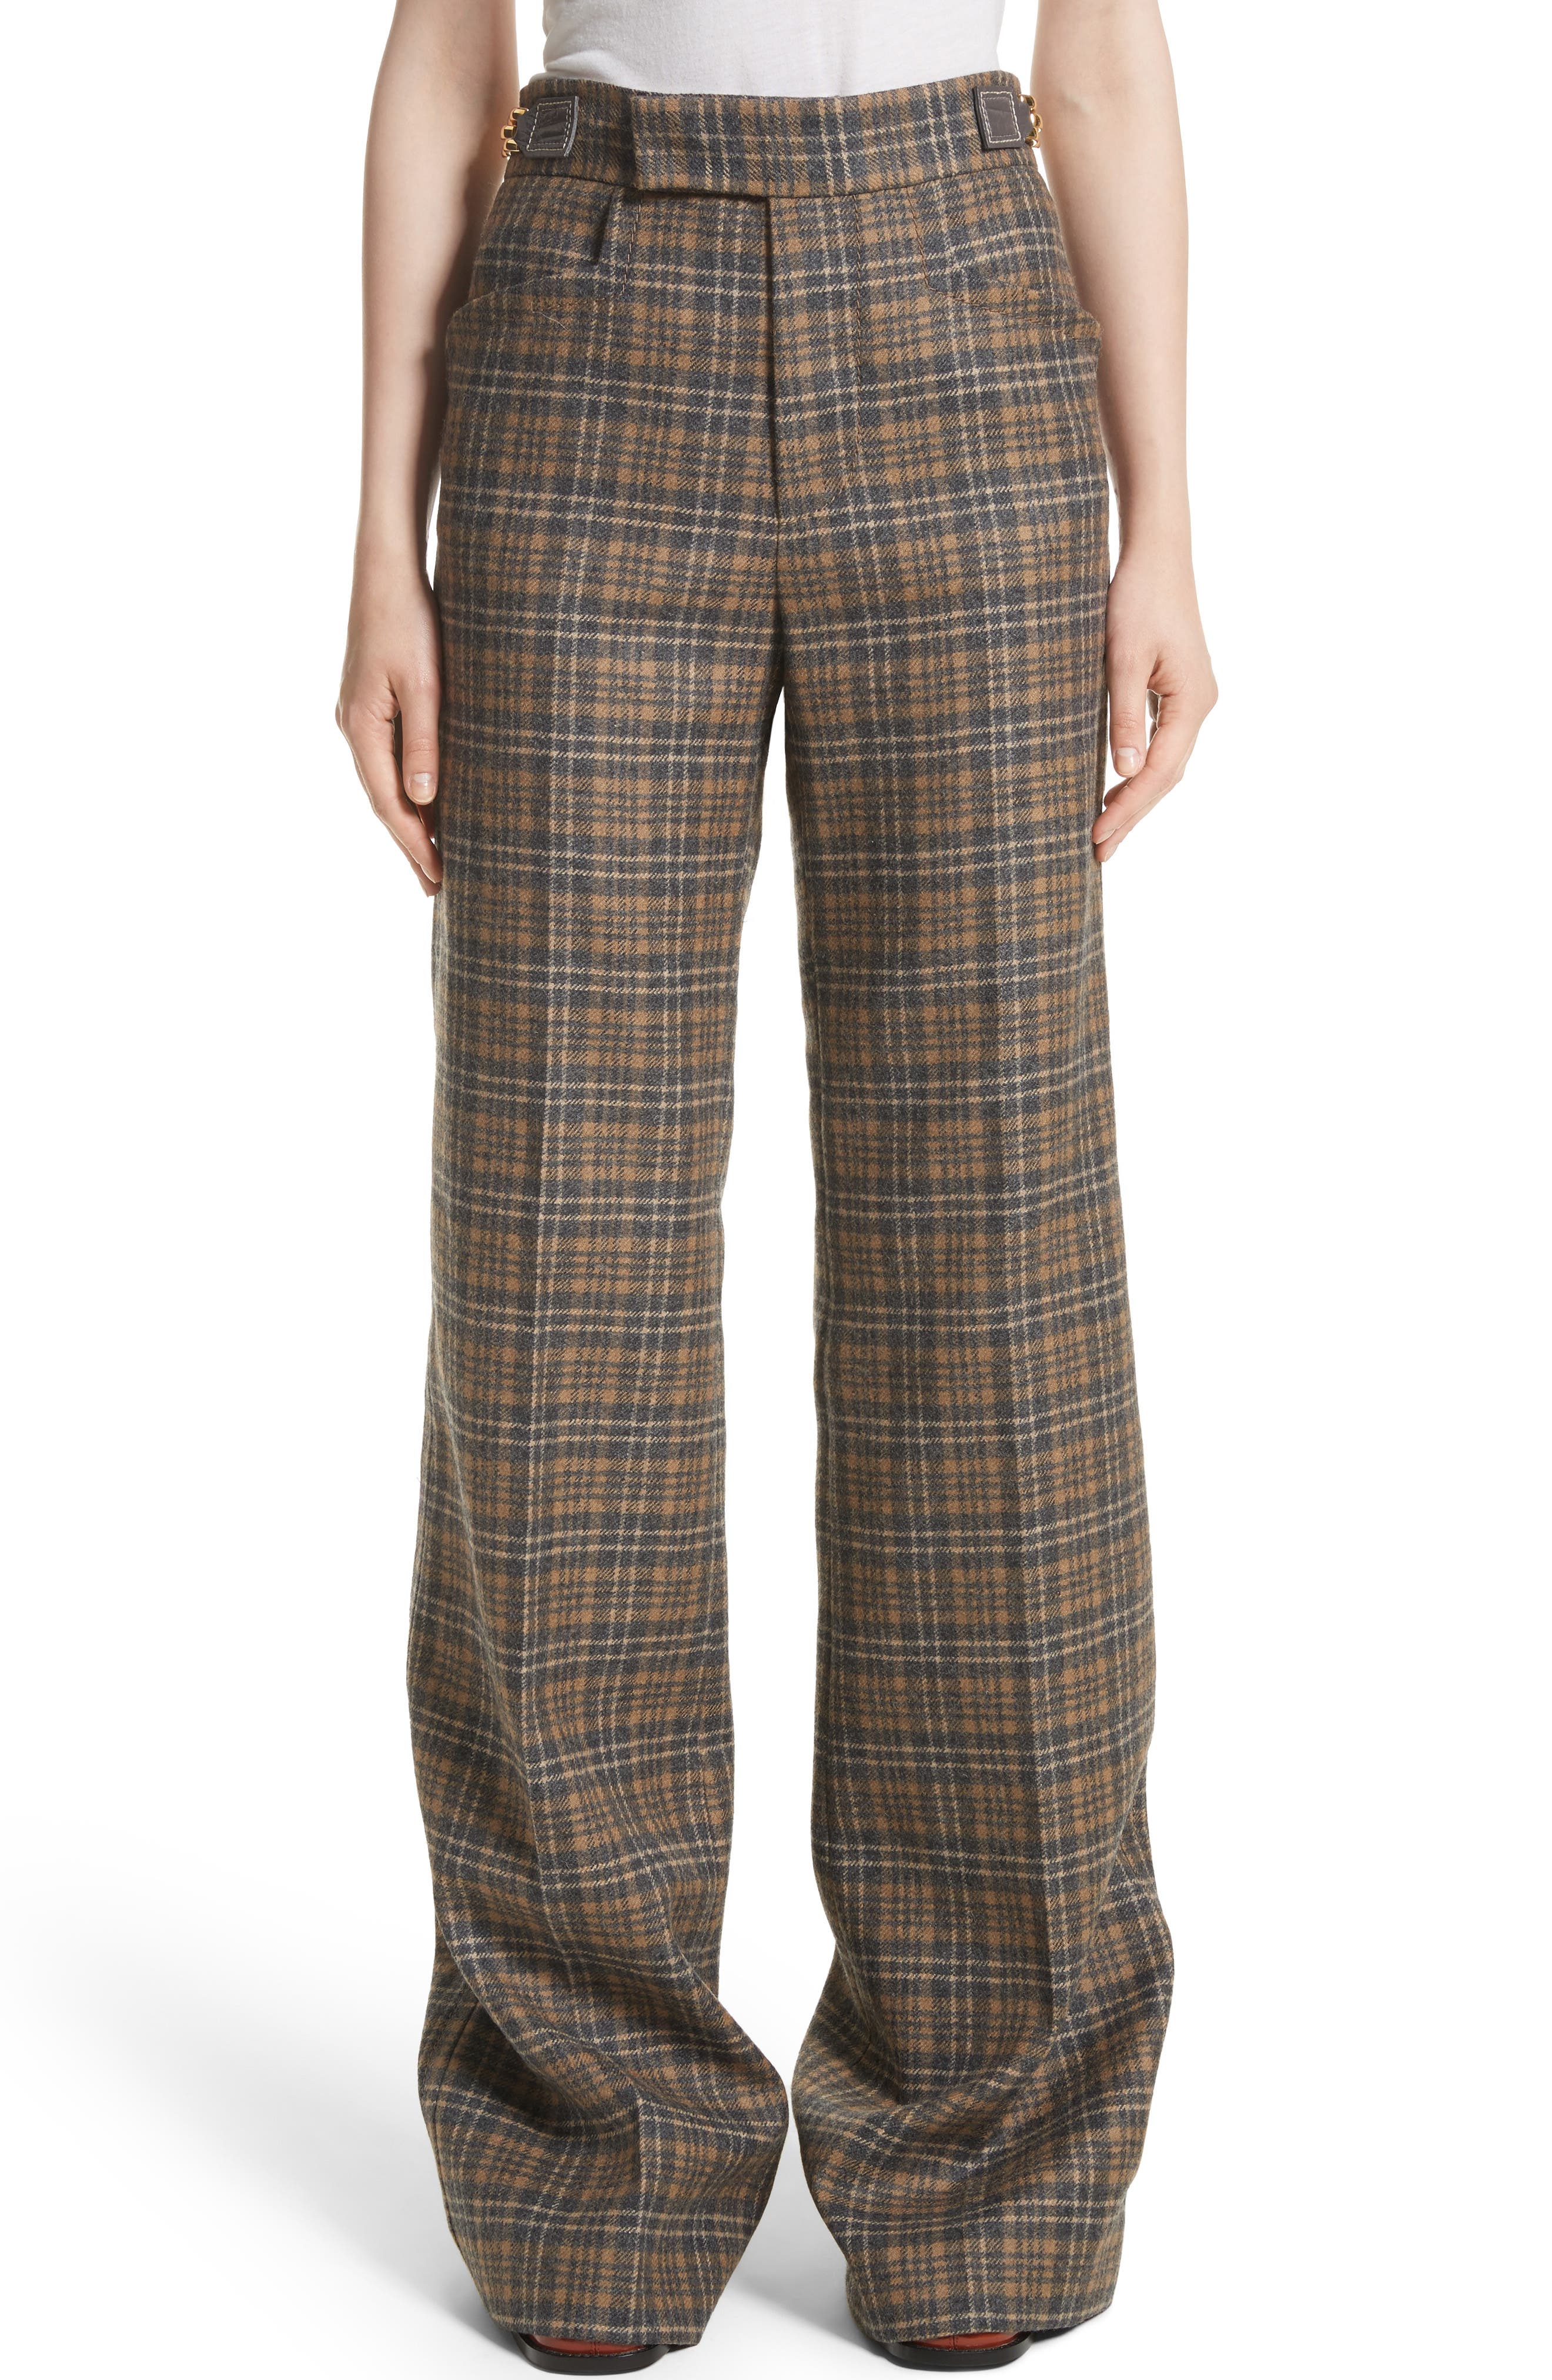 Alternate Image 1 Selected - MARC JACOBS Plaid Wool Blend Wide Leg Pants